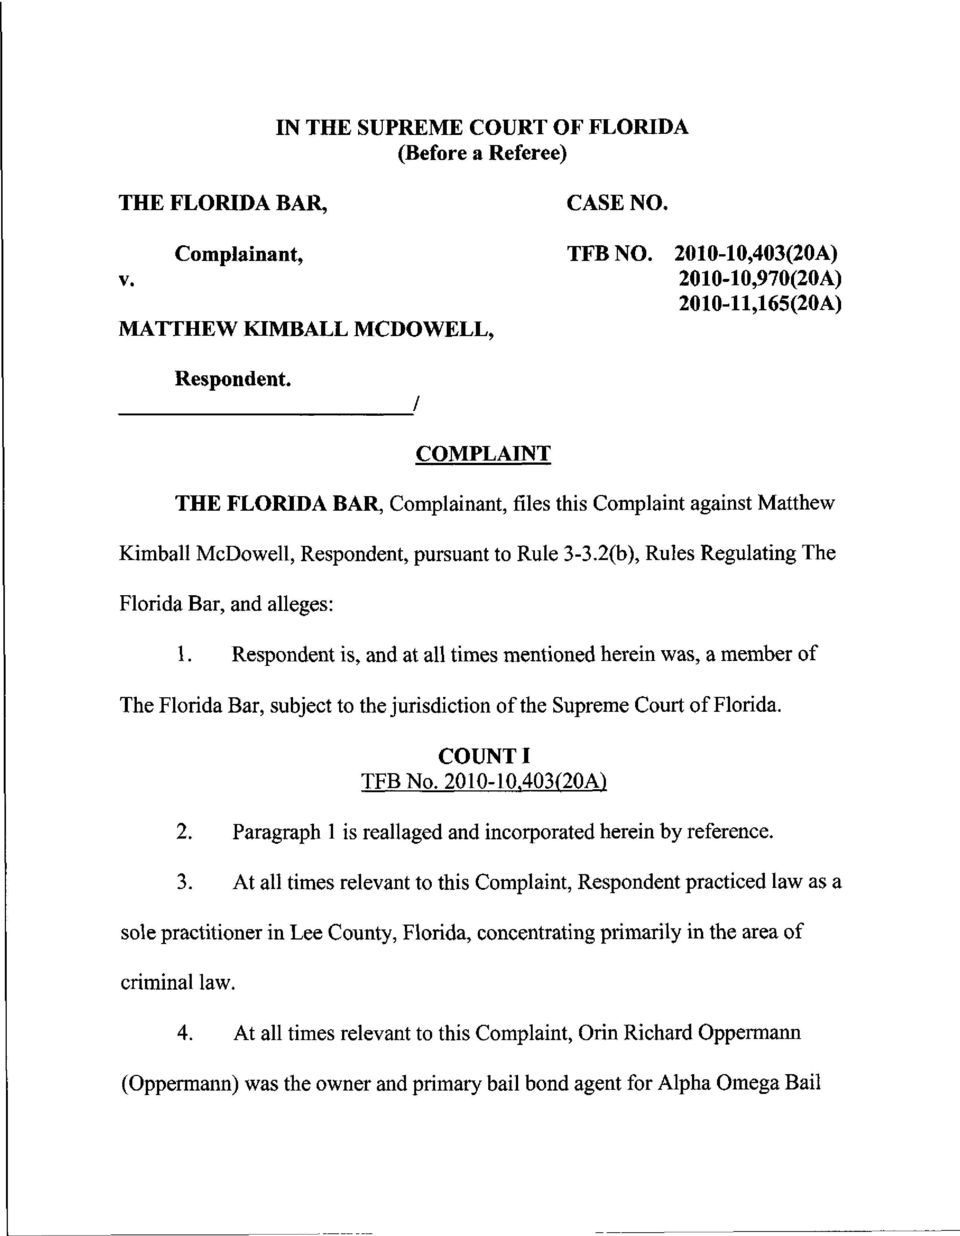 Respondent is, and at all times mentioned herein was, a member of The Florida Bar, subject to the jurisdiction of the Supreme Court of Florida. COUNTI TFBNo.2010-10.403(20A) 2.